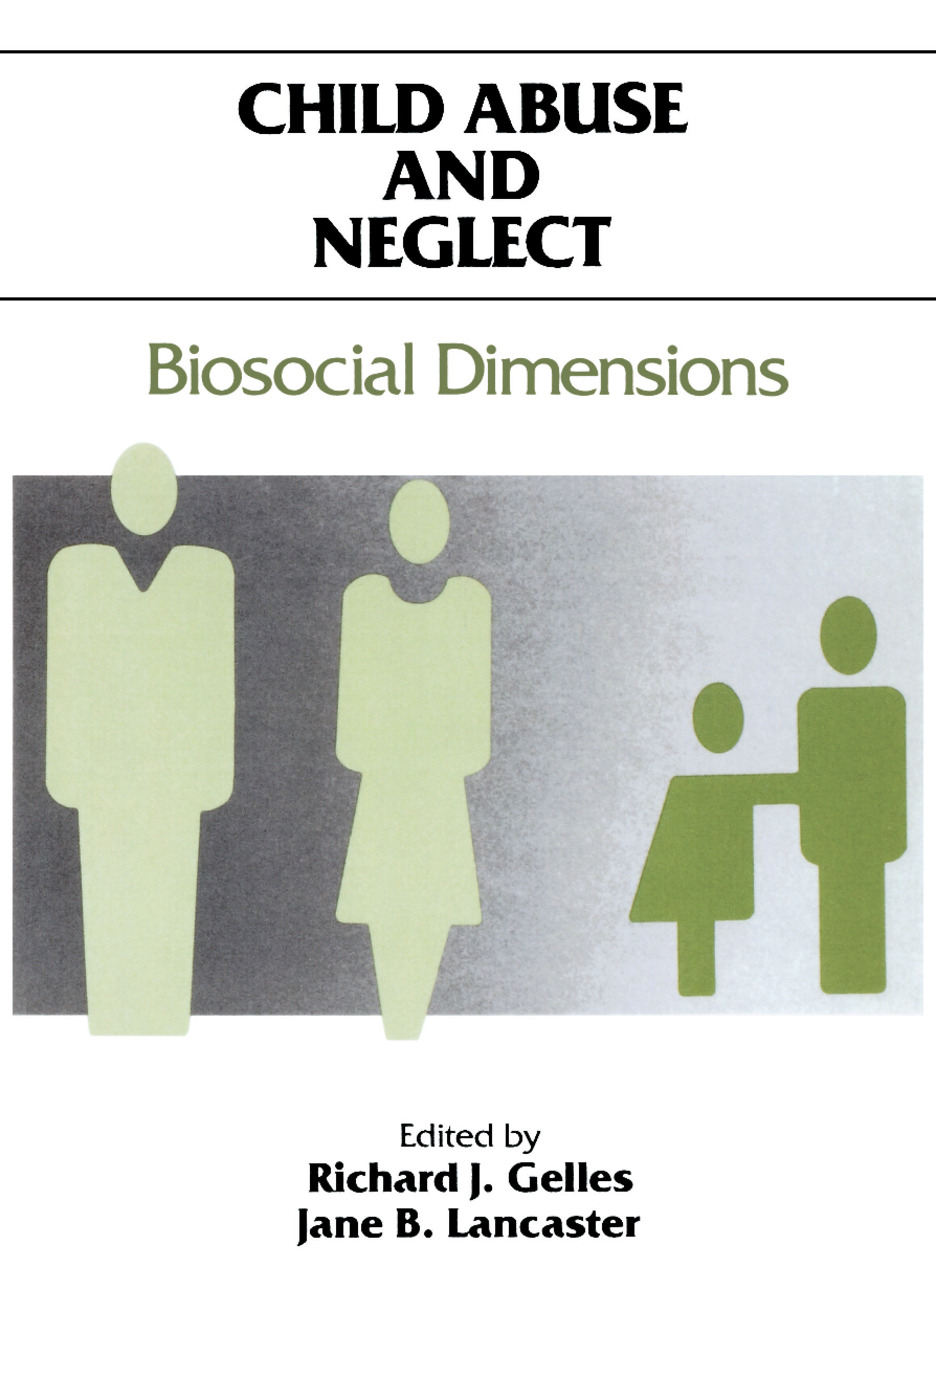 Child Abuse and Neglect: Biosocial Dimensions - Foundations of Human Behavior, 1st Edition (Paperback) book cover